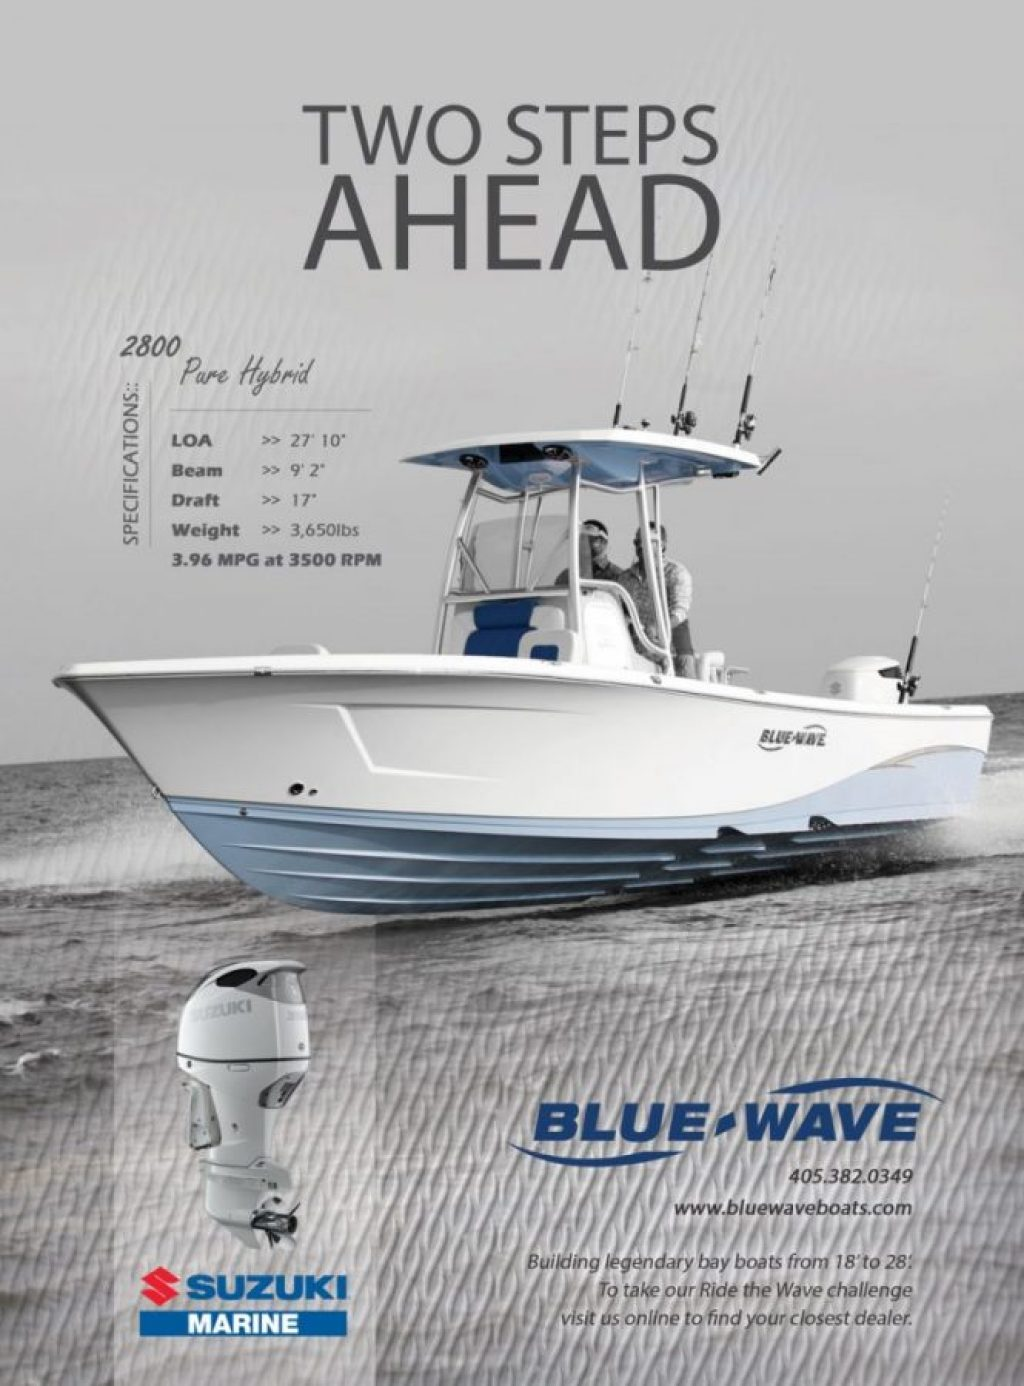 BLUE WAVE BOATS